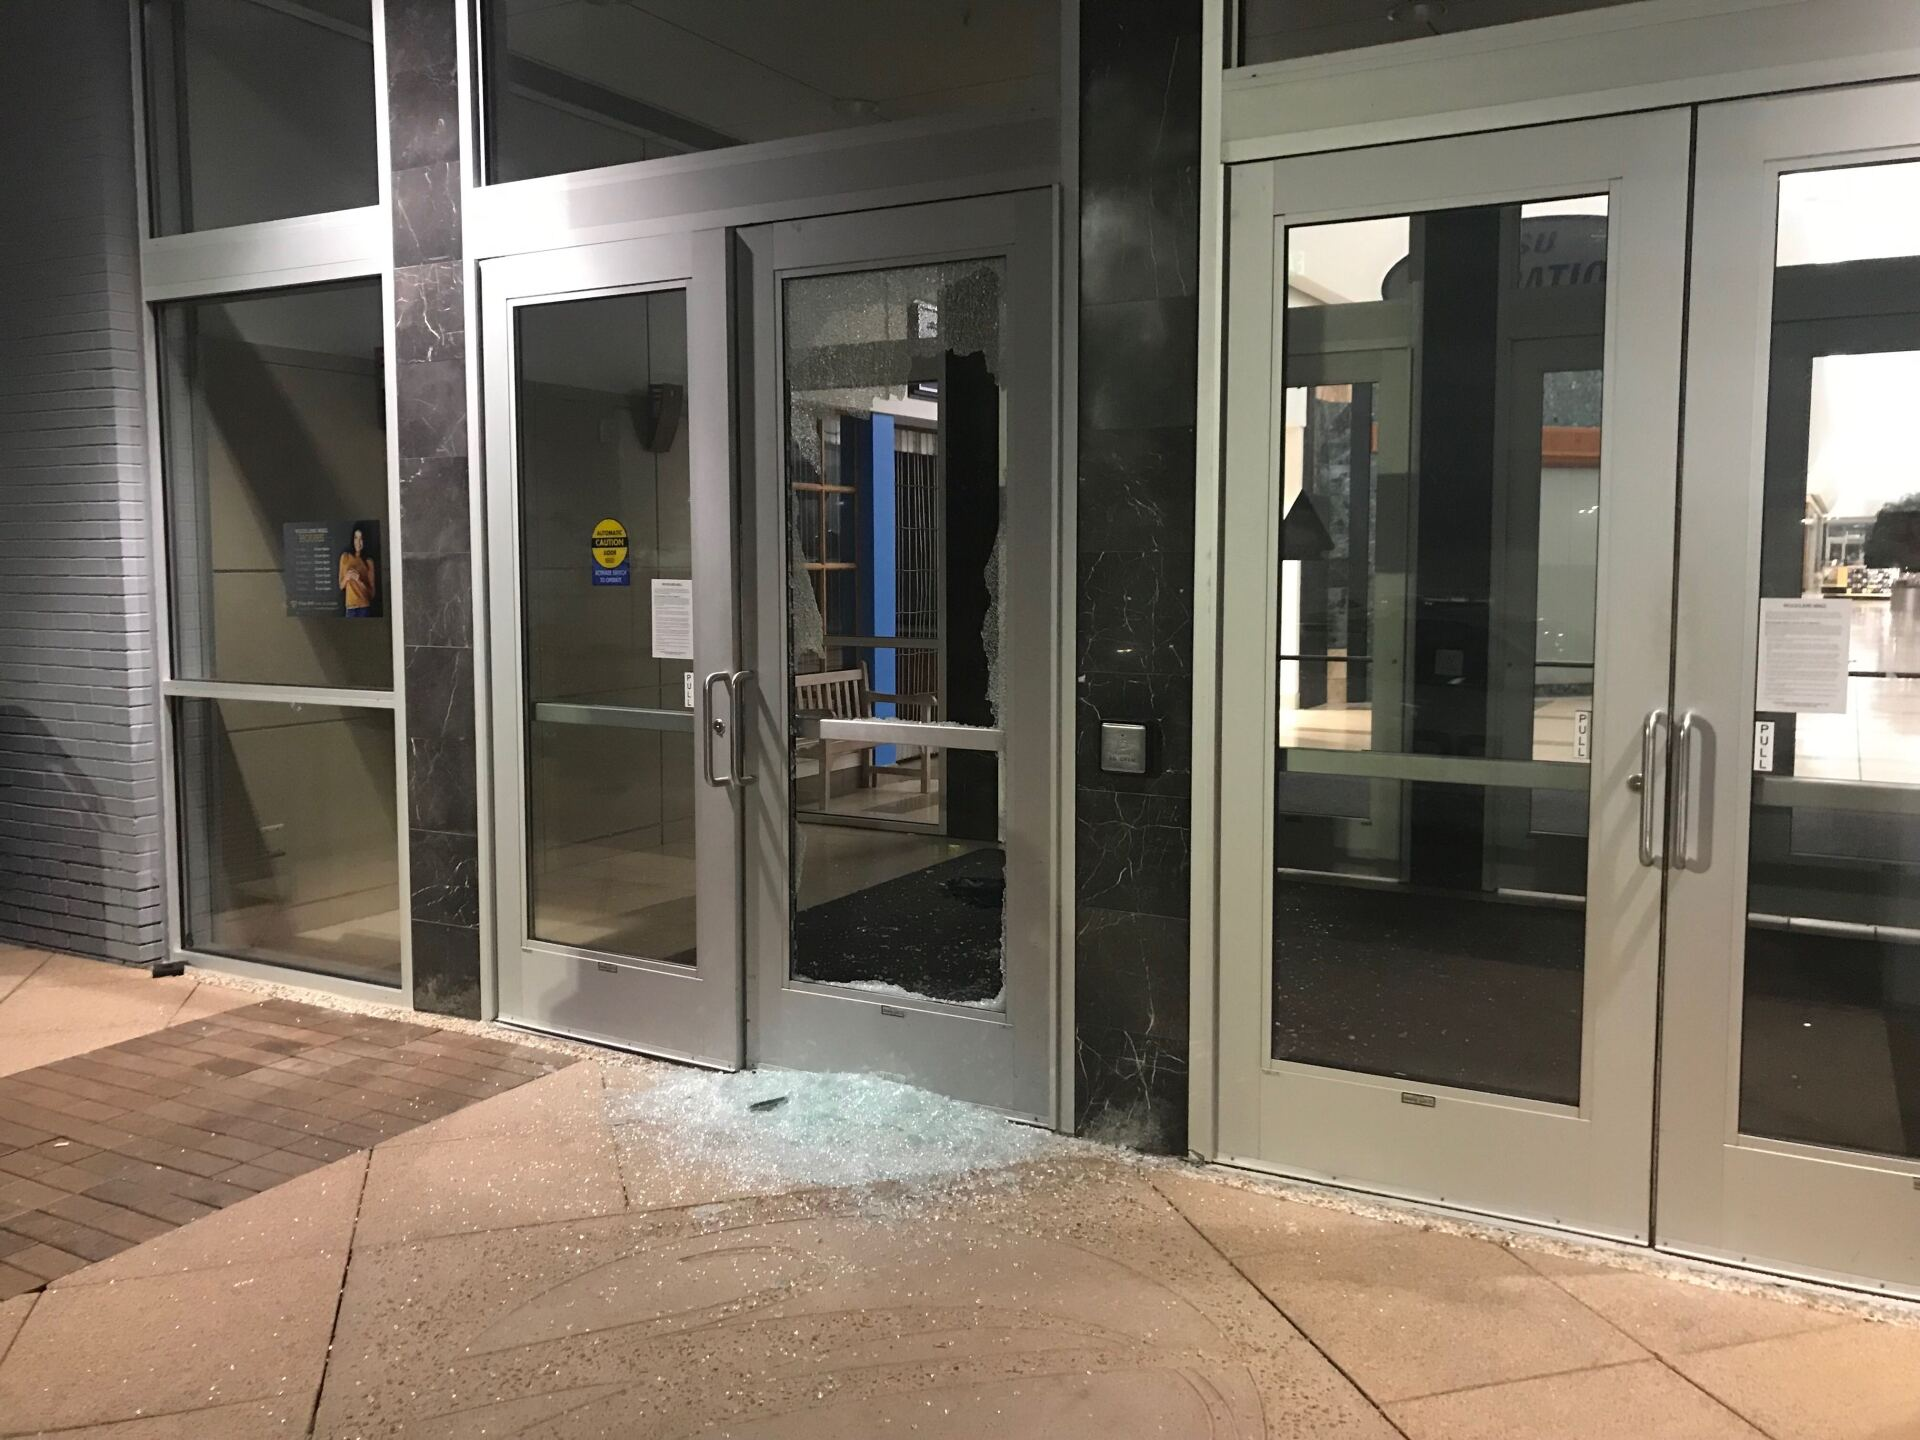 Photos: Three teens arrested after break-in at Woodland Mall